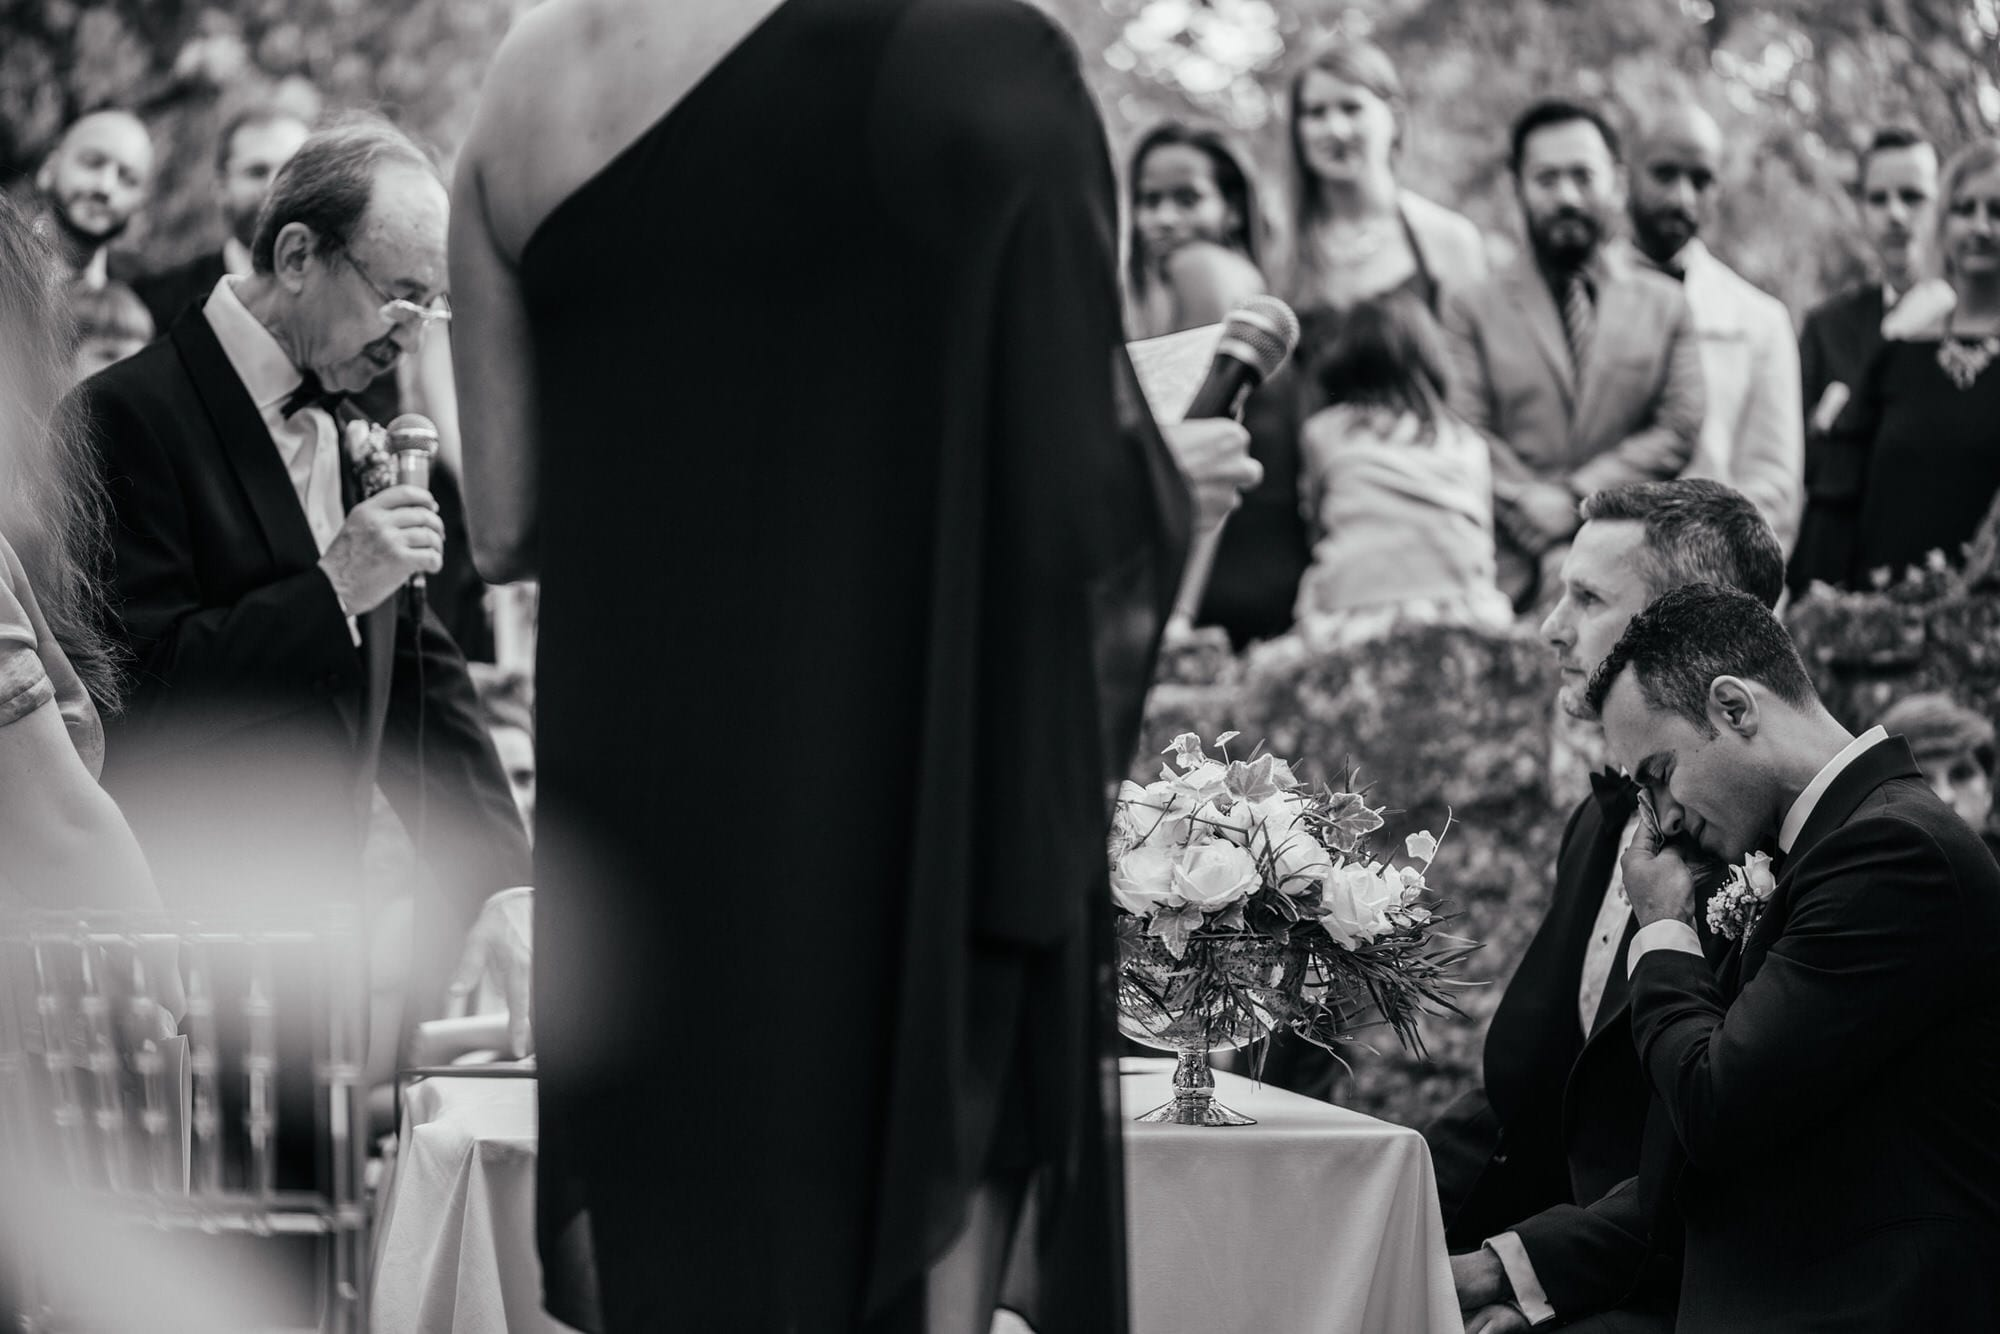 An emotional moment during a wedding in Lisbon, Portugal